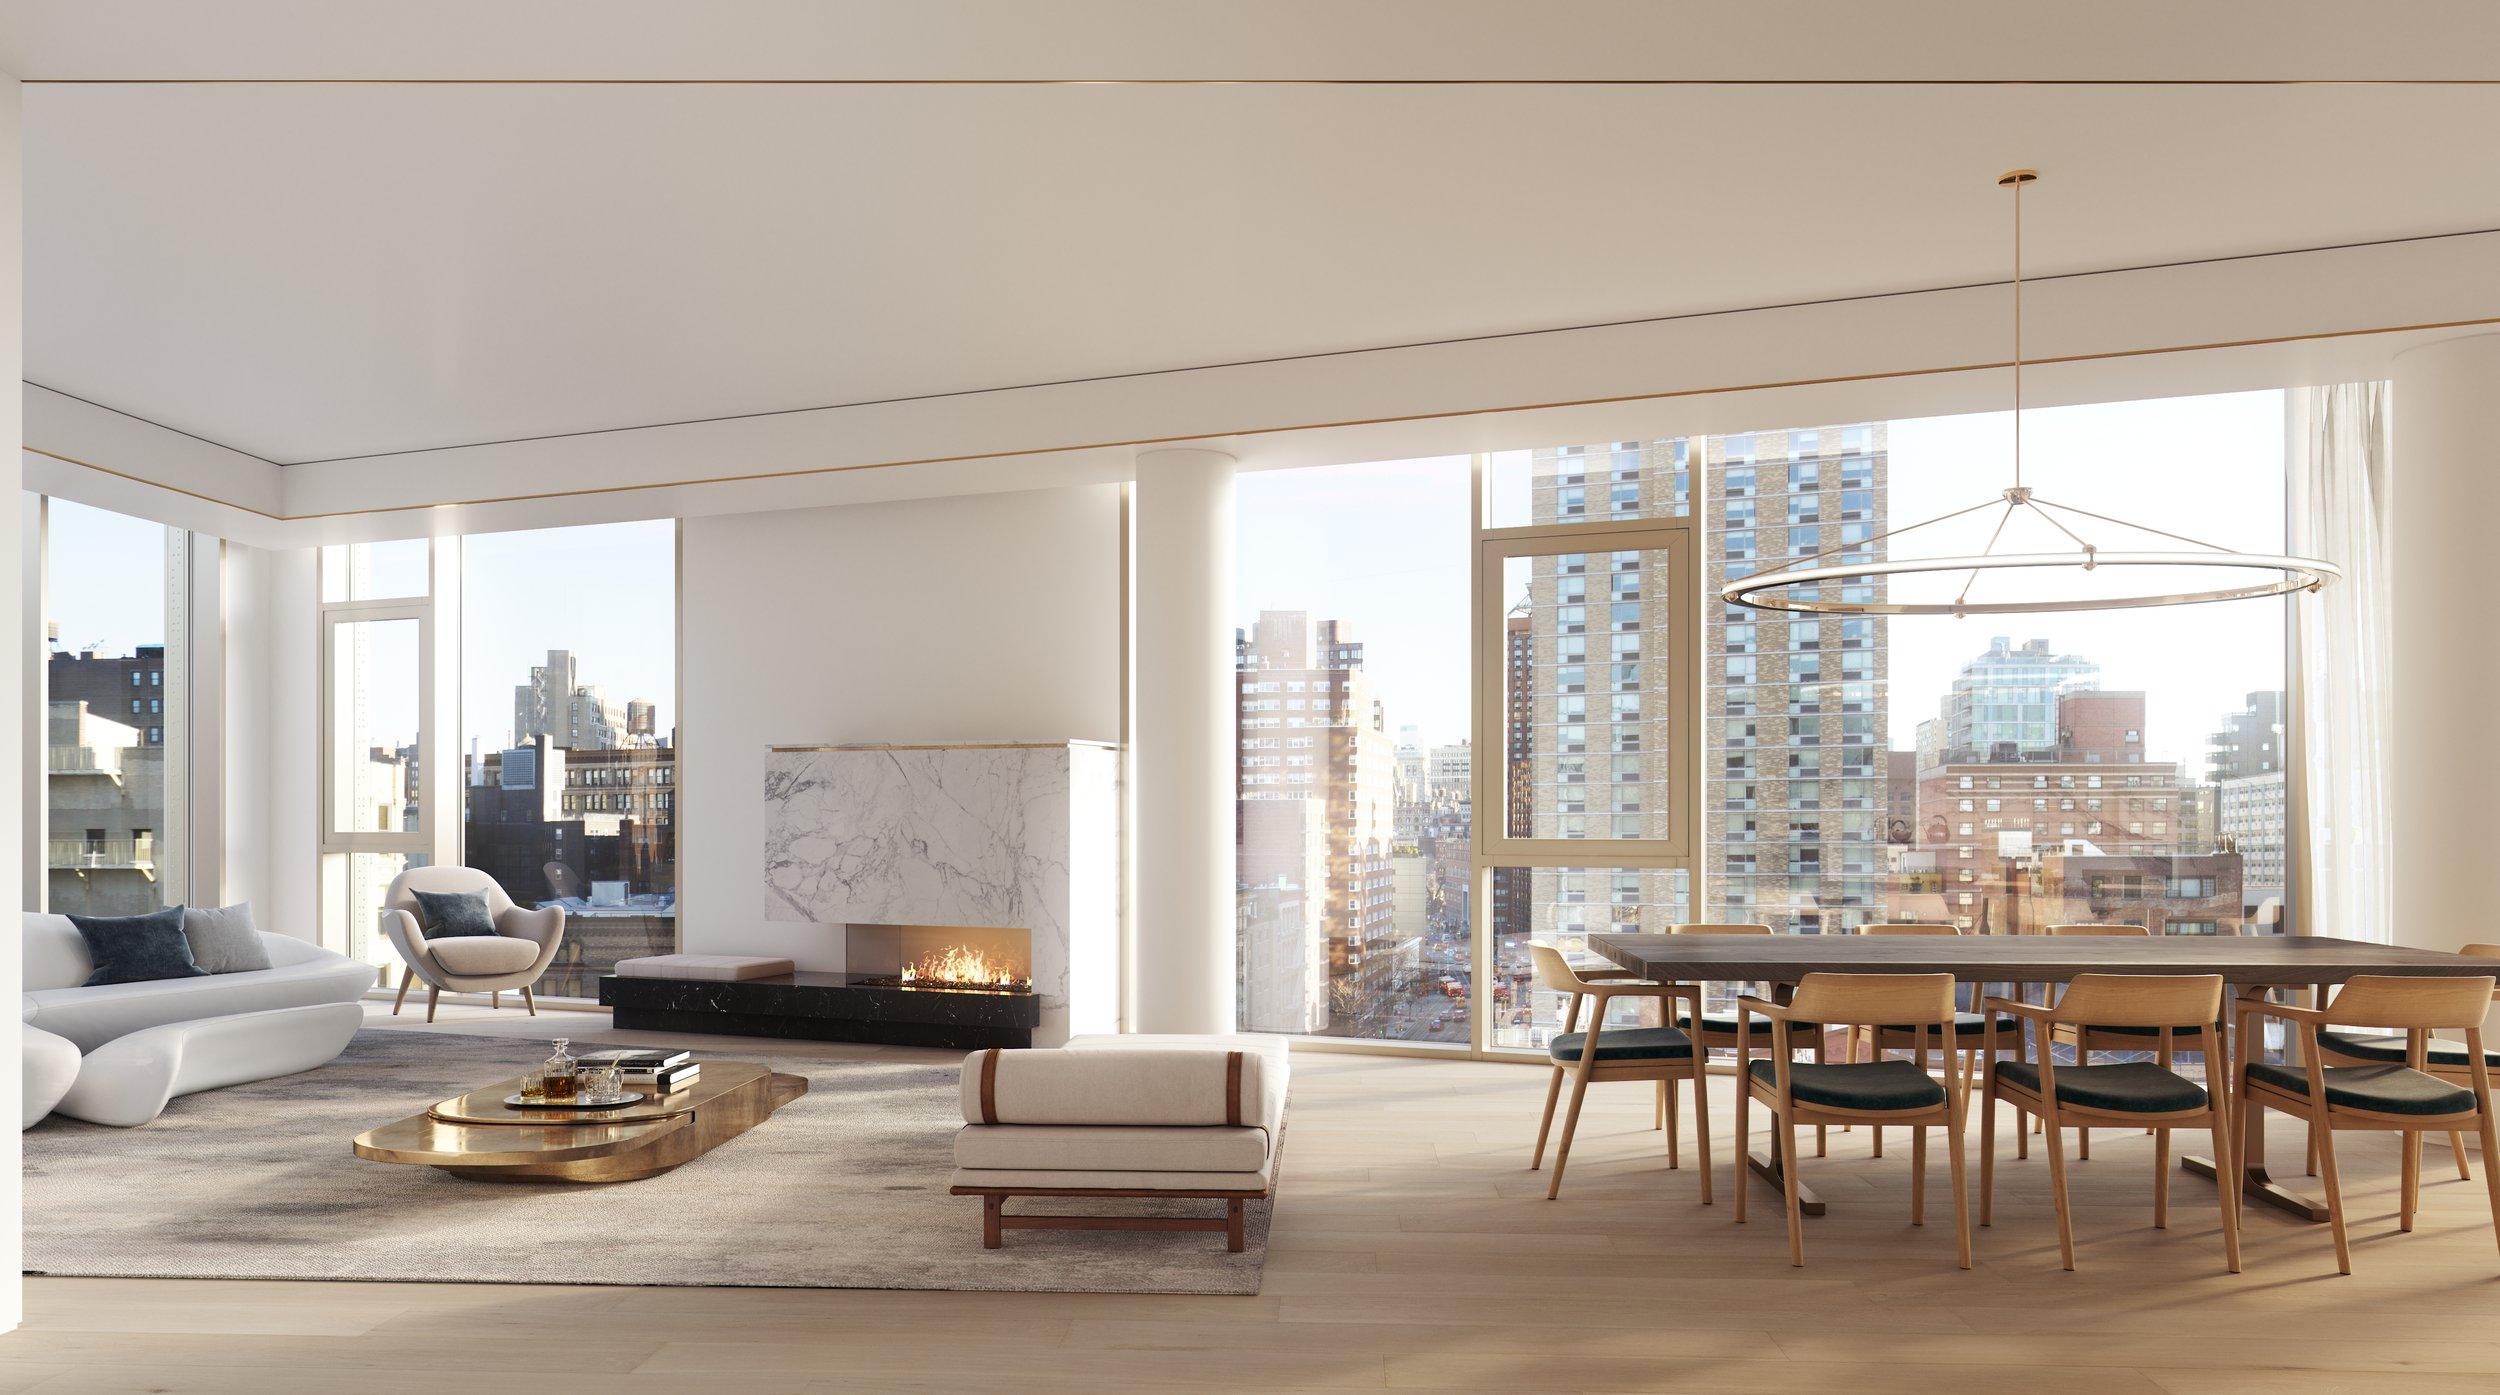 Rendering of living room at 80 east 10th street with MEP-FP engineering services provided by 2L Engineering